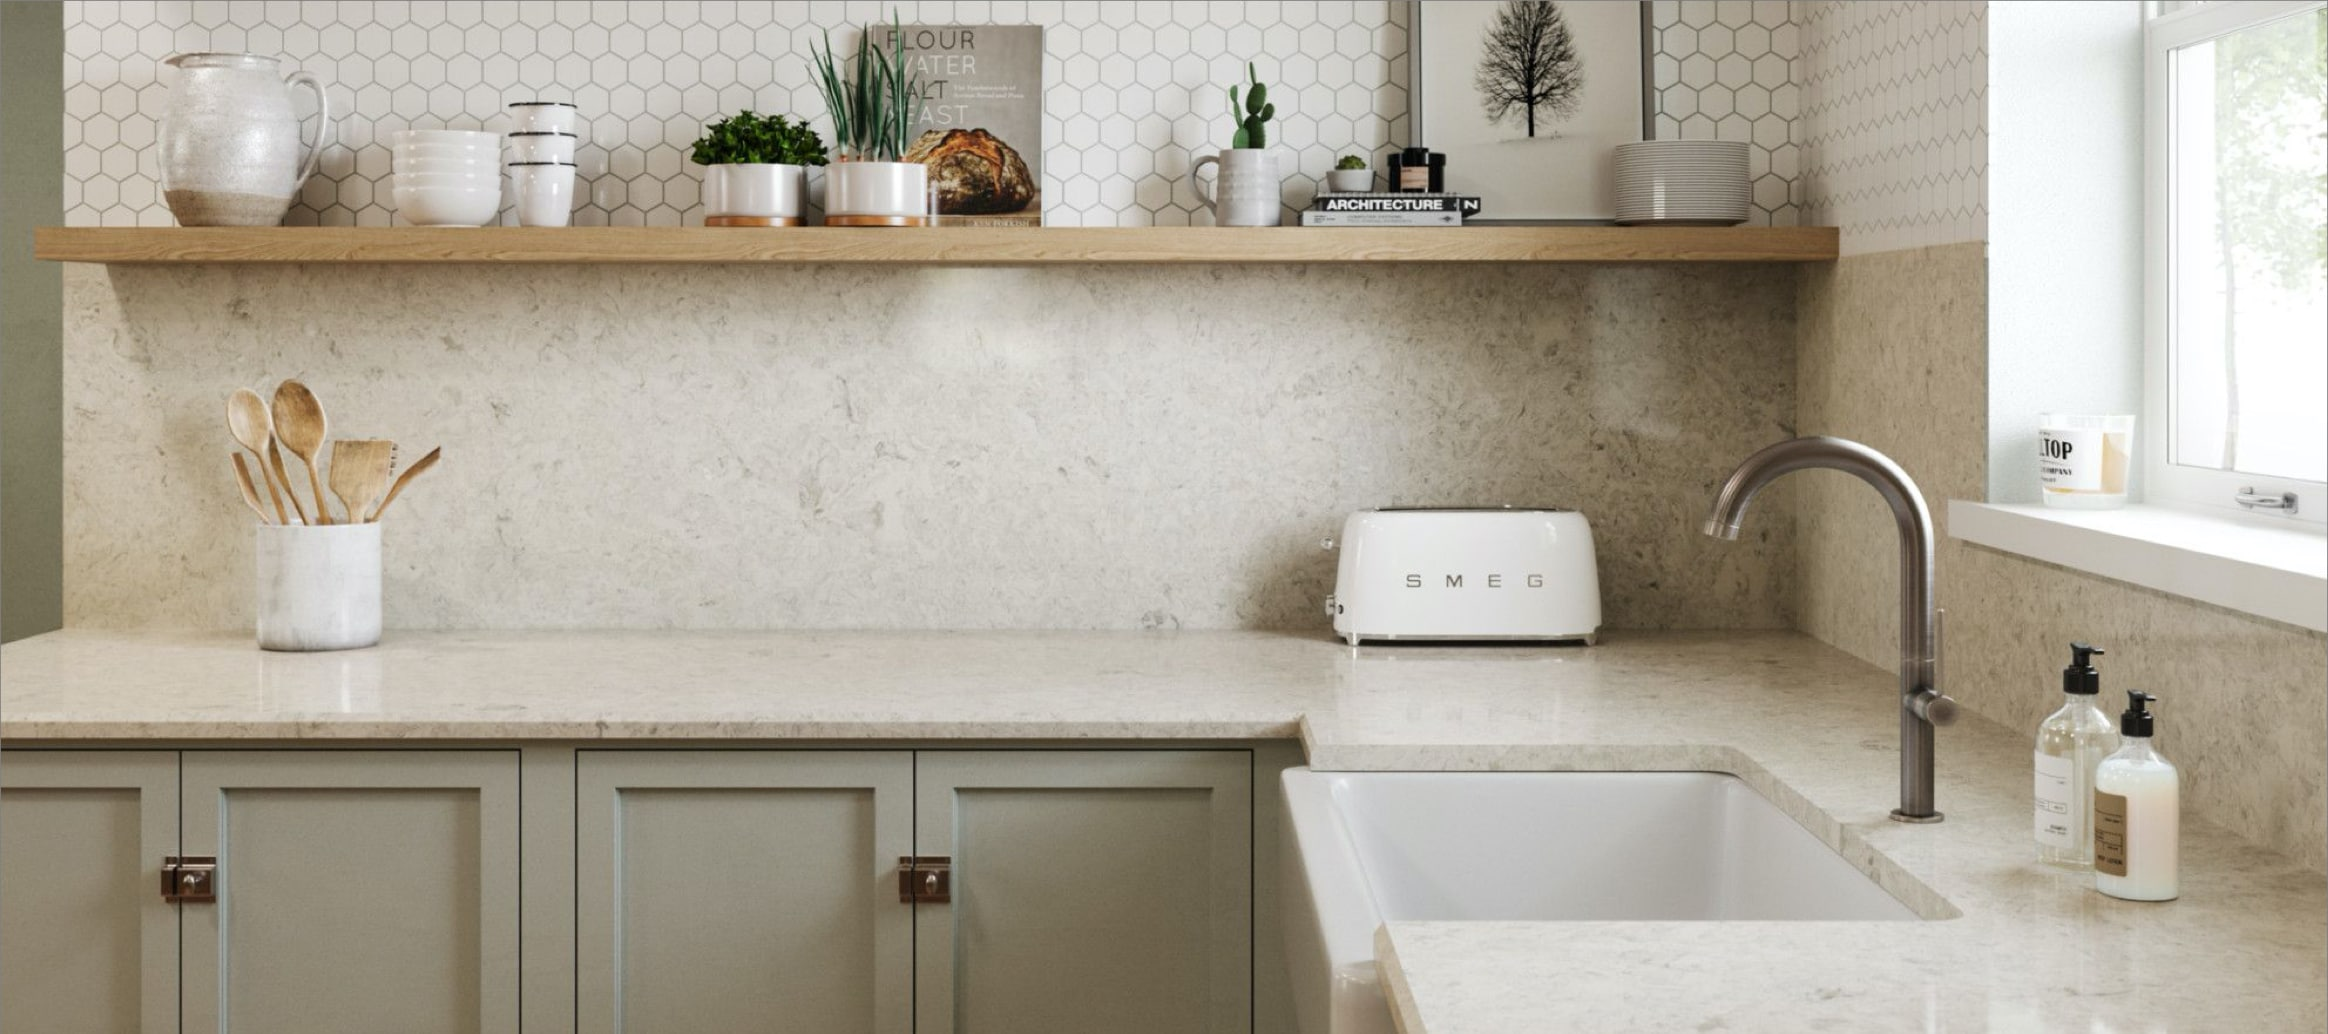 Home Depot Cambria Quartz Countertops